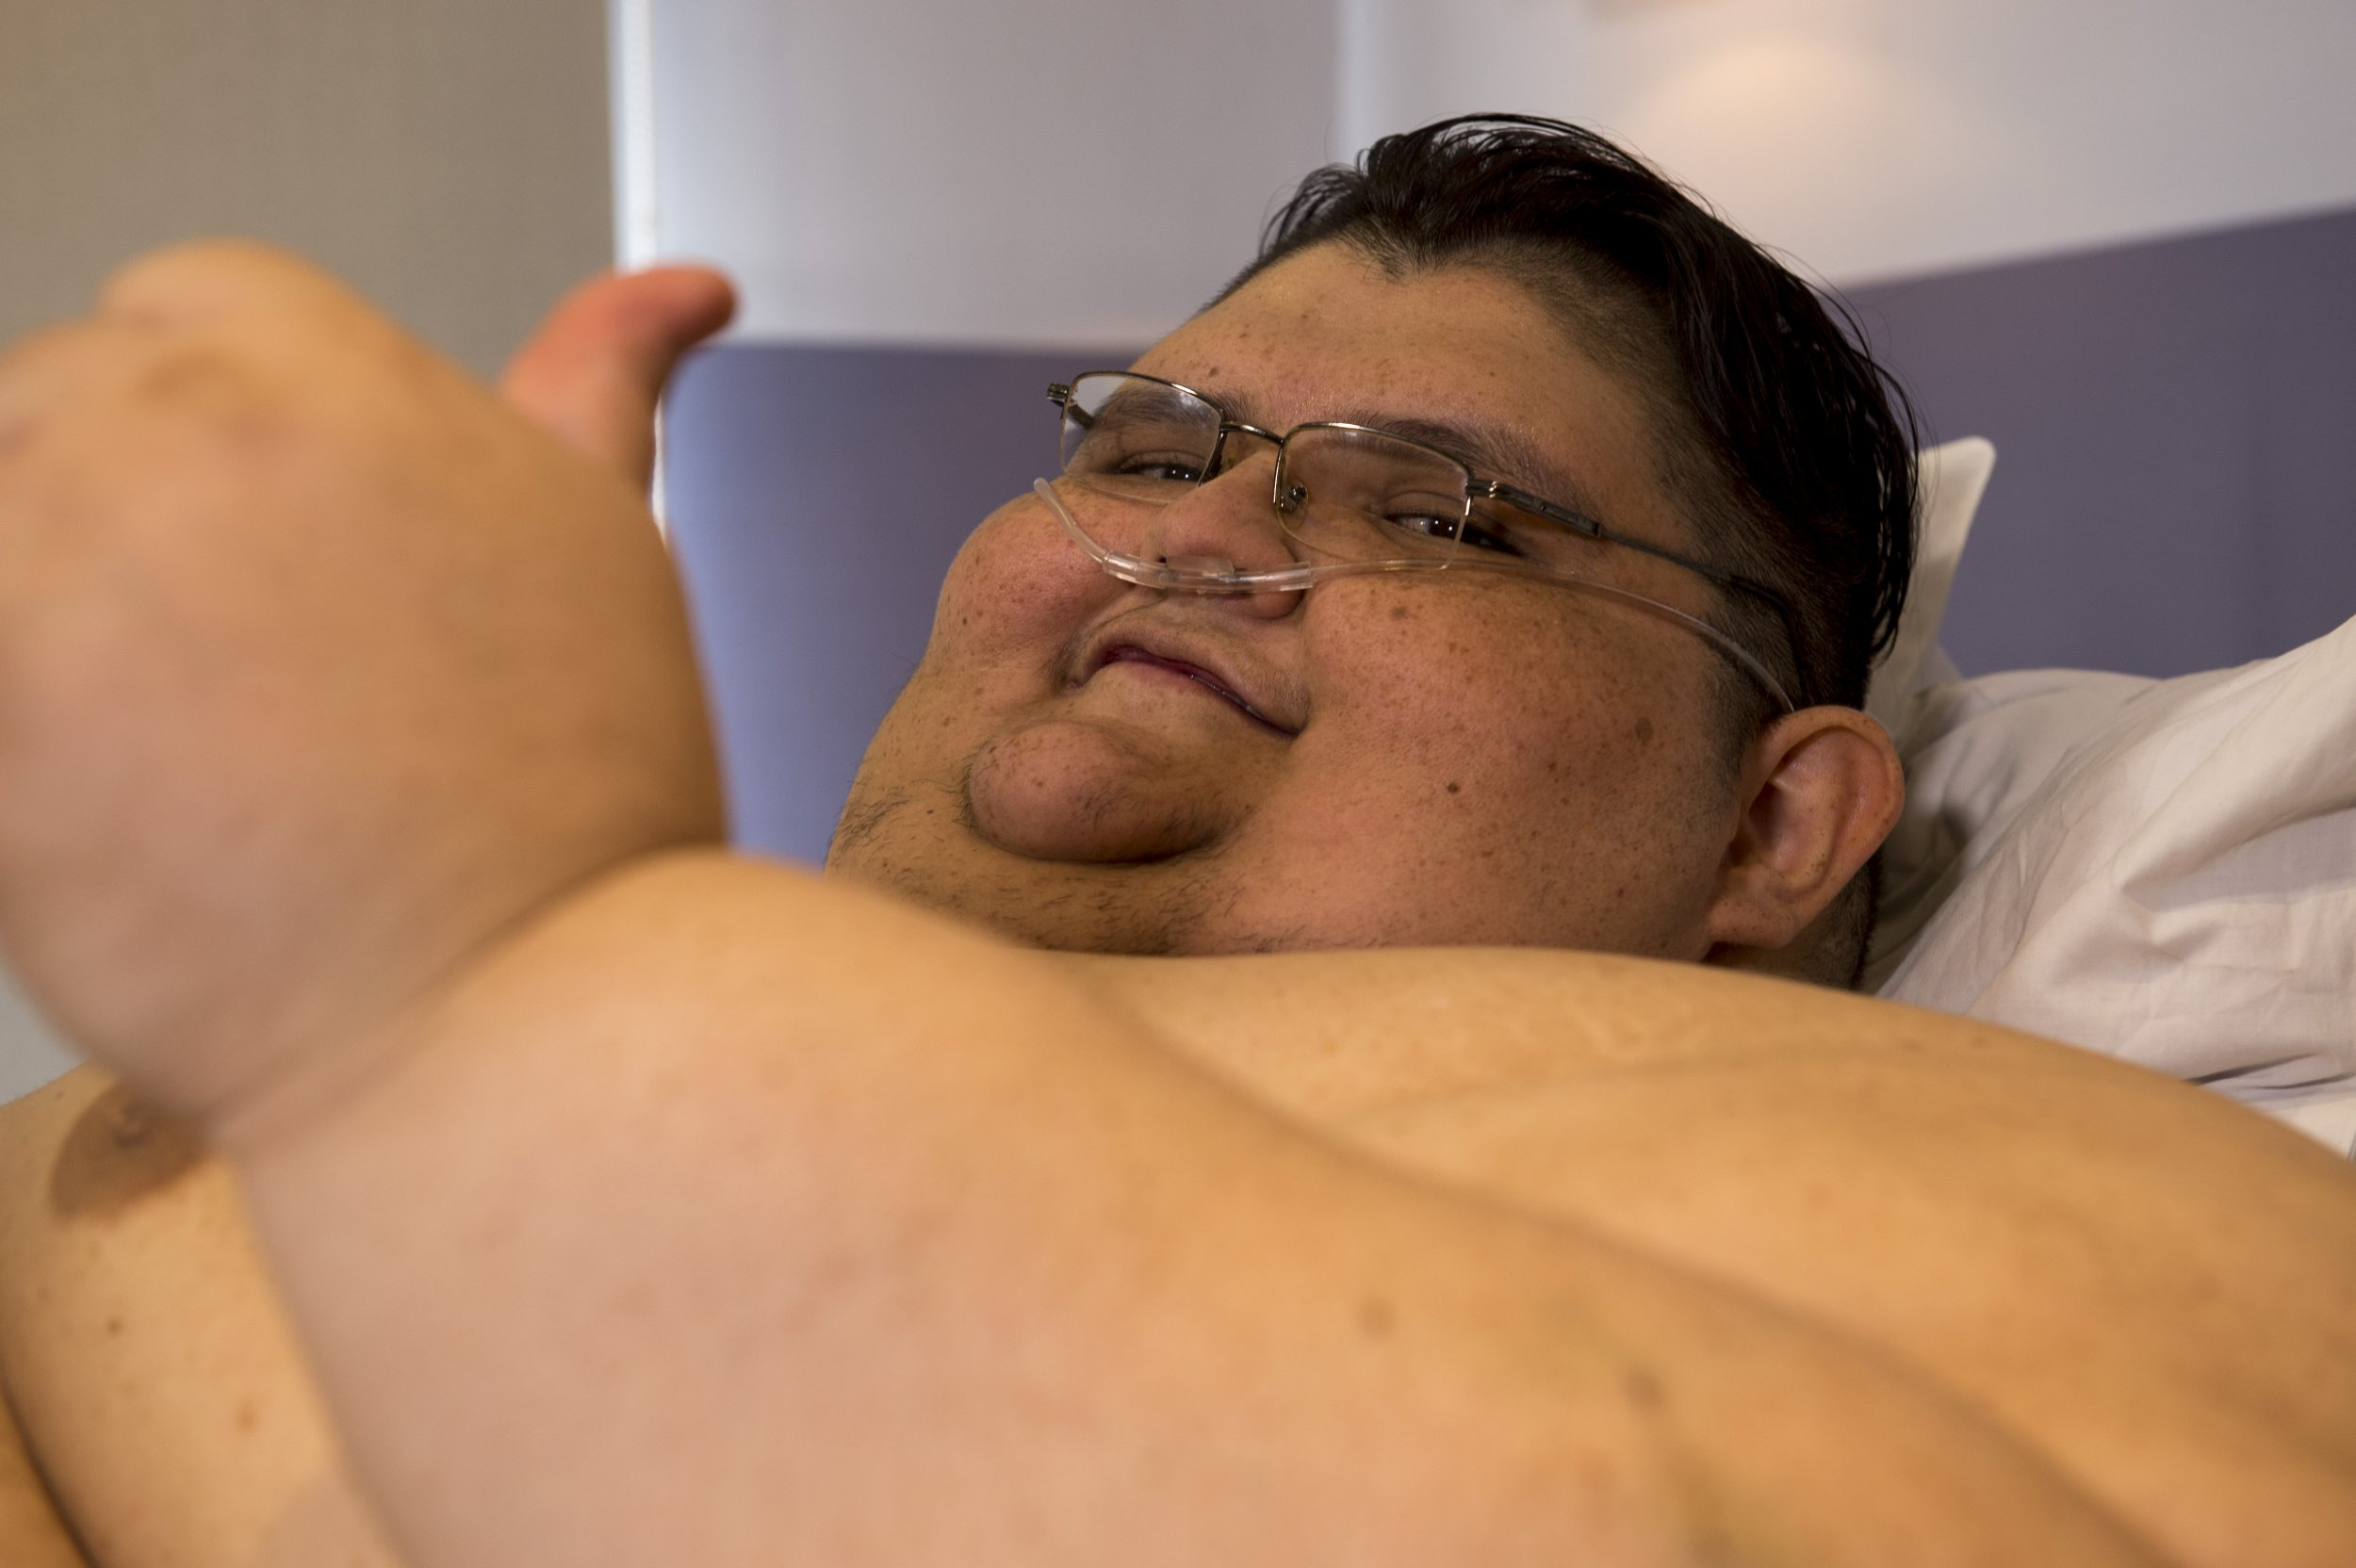 World S Quot Once Quot Heaviest Man Alive Loses Half His Body